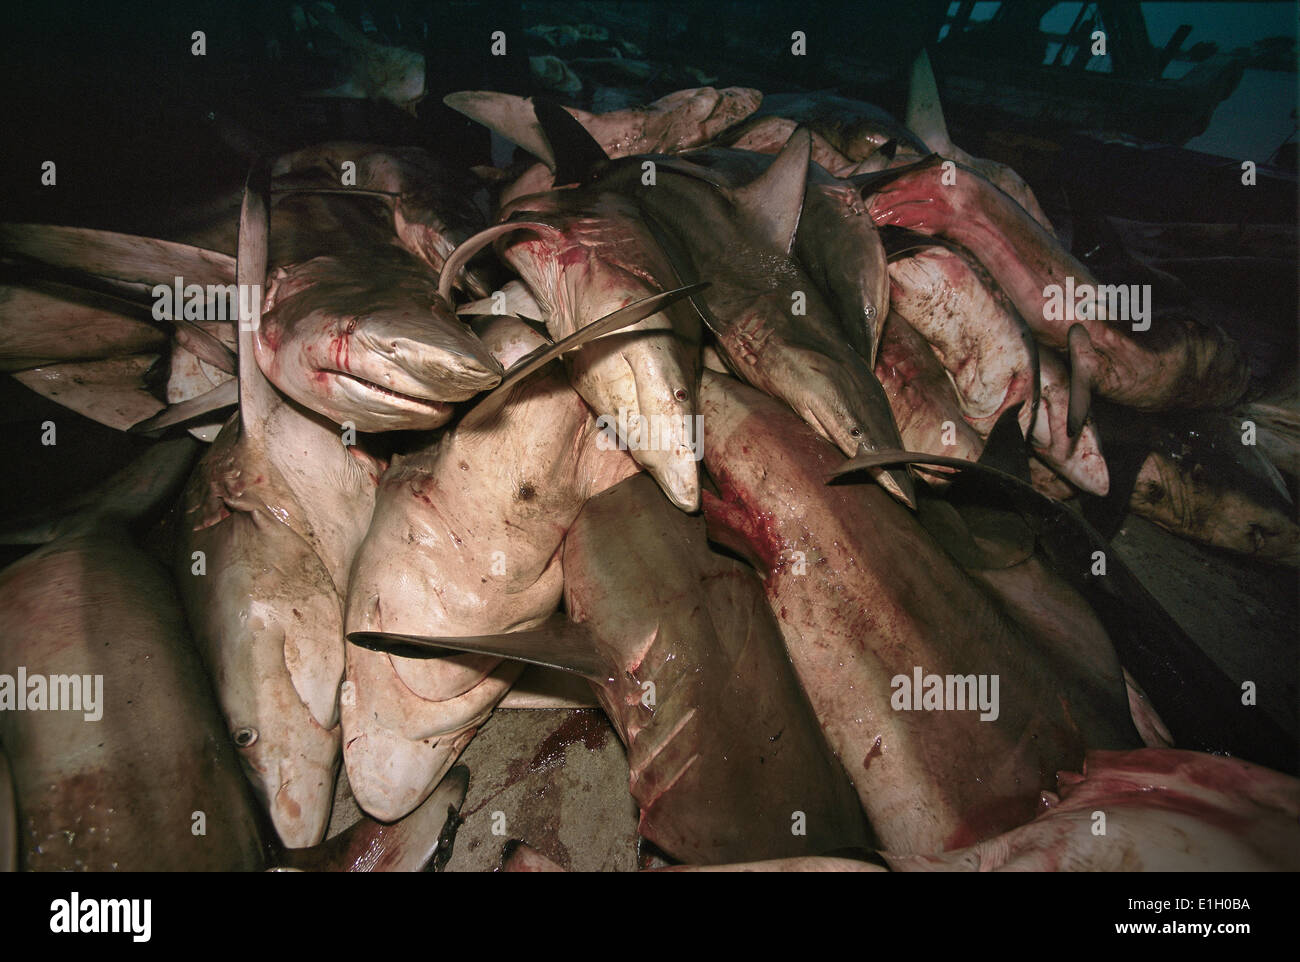 Pile of sharks off-loaded from Long-line fishing trip (Thoothoor Shark Fishermen), Cochin - India. - Stock Image